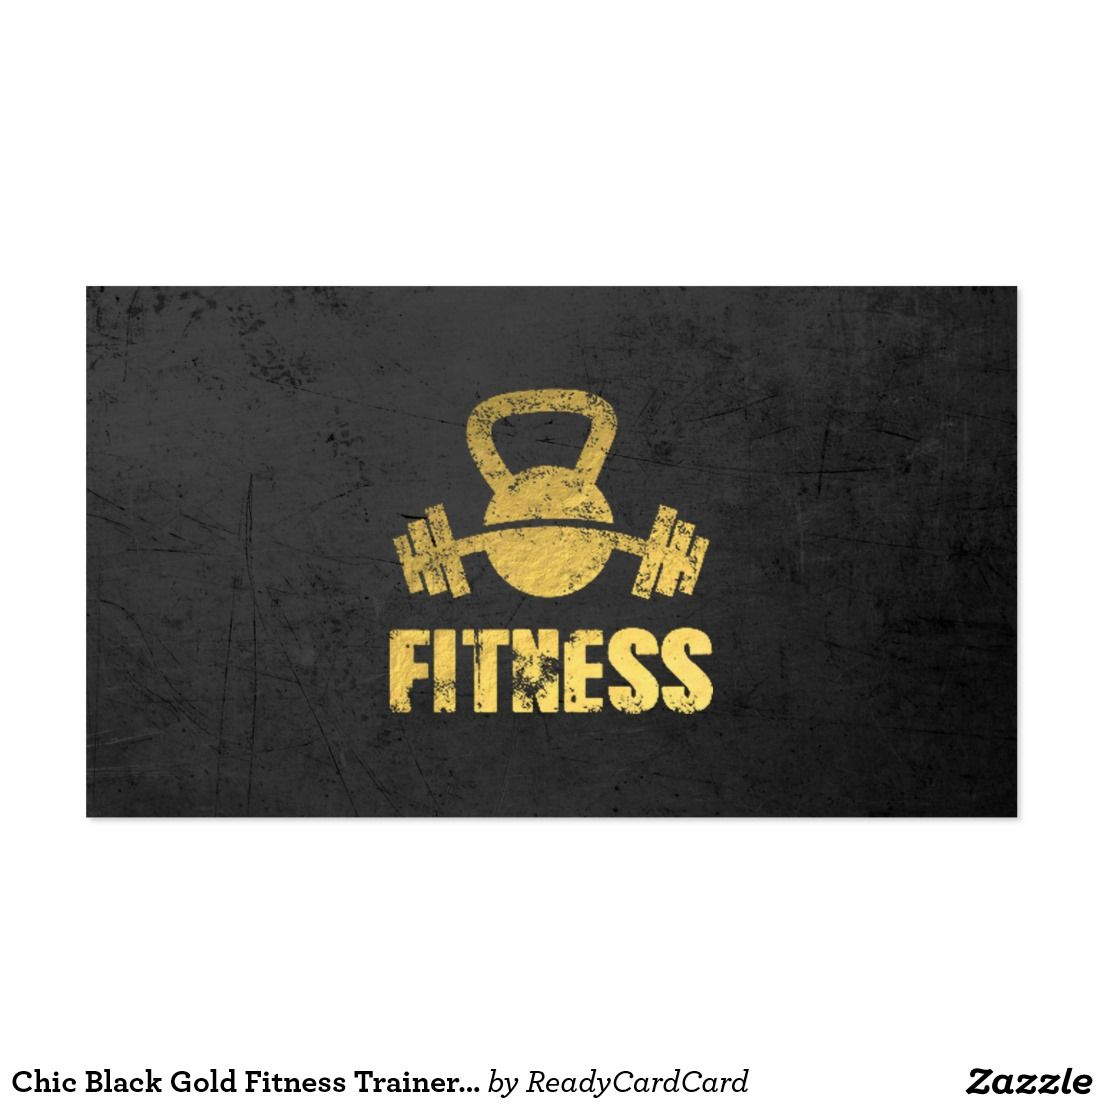 Chic Black Gold Fitness Trainer Kettlebell Barbell Business Card ...